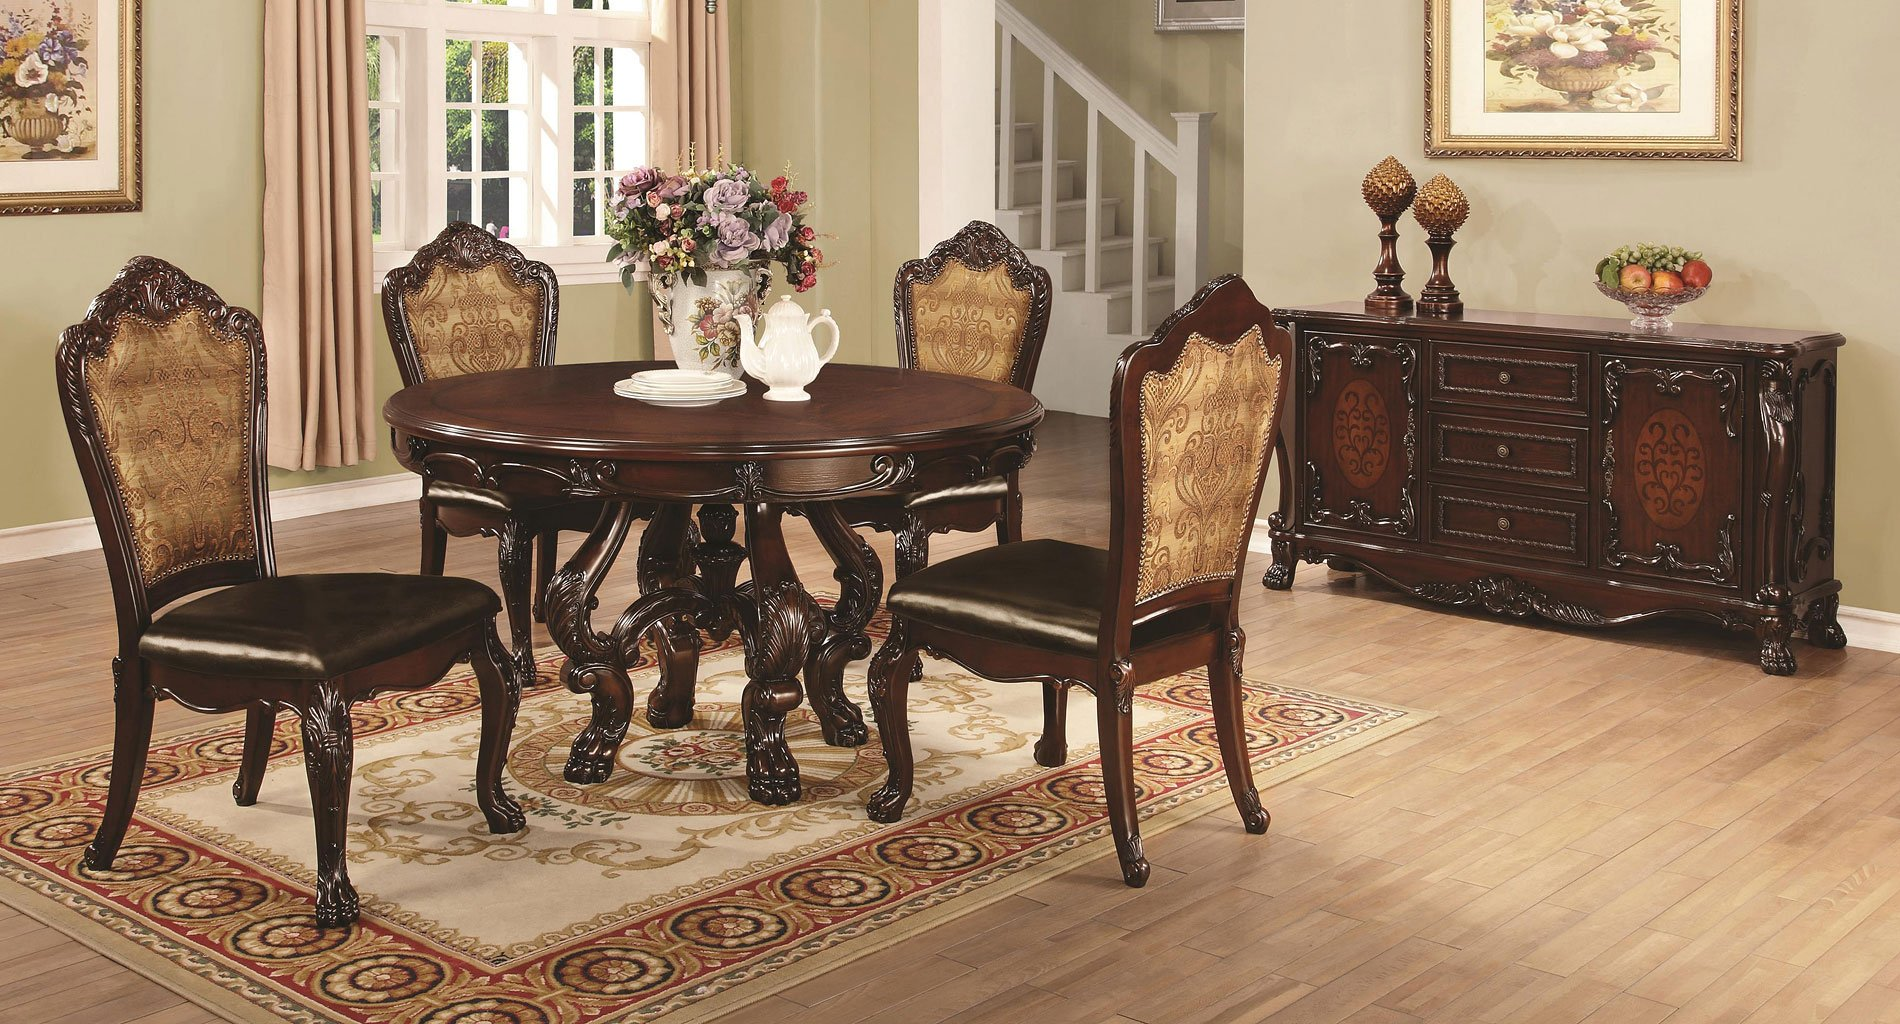 Benbrook round dining room set casual dining sets for Casual dining furniture